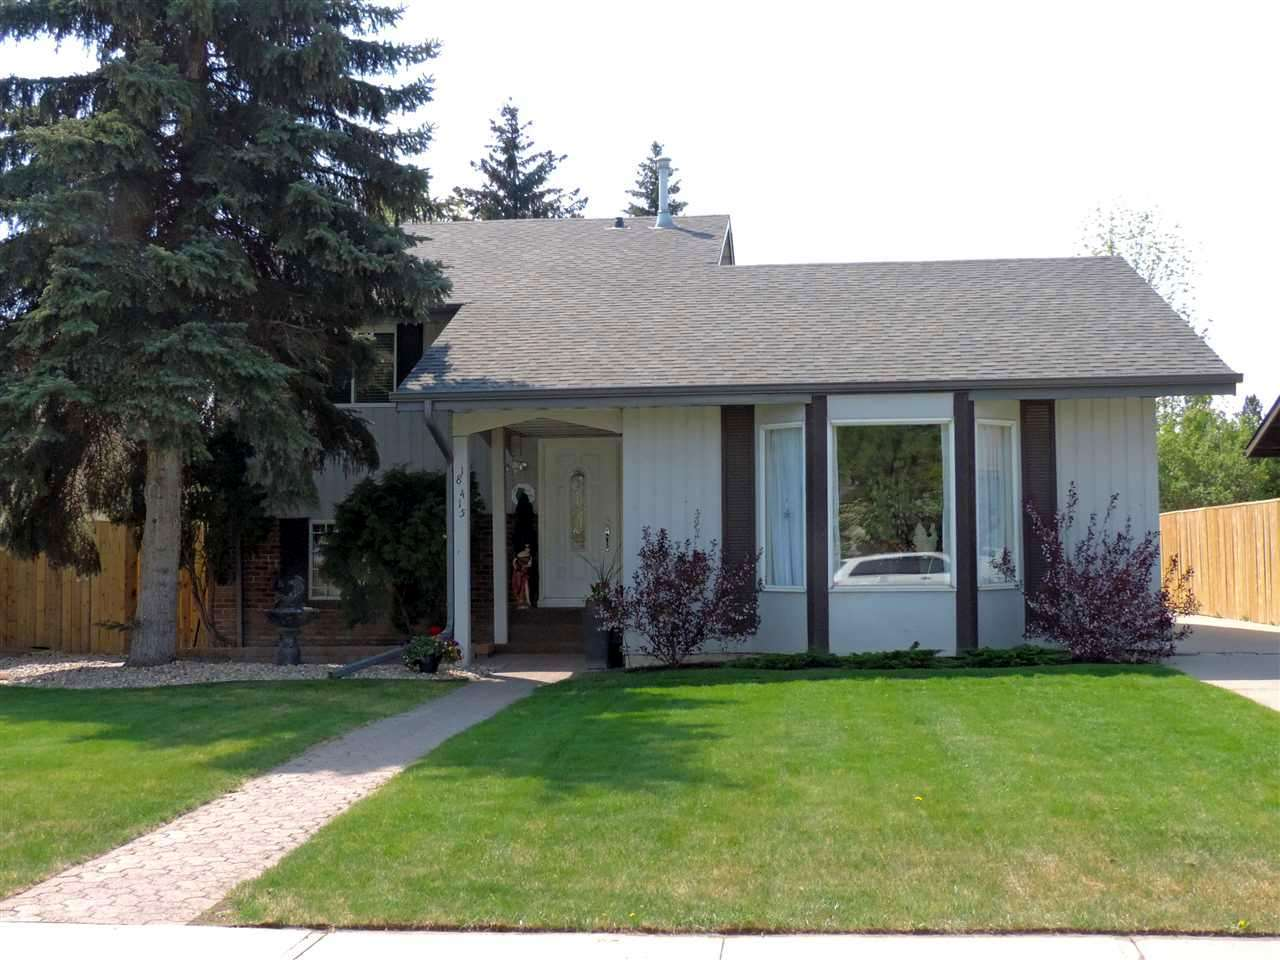 Main Photo: 18415 82 AV NW in Edmonton: Zone 20 House for sale : MLS® # E4020994